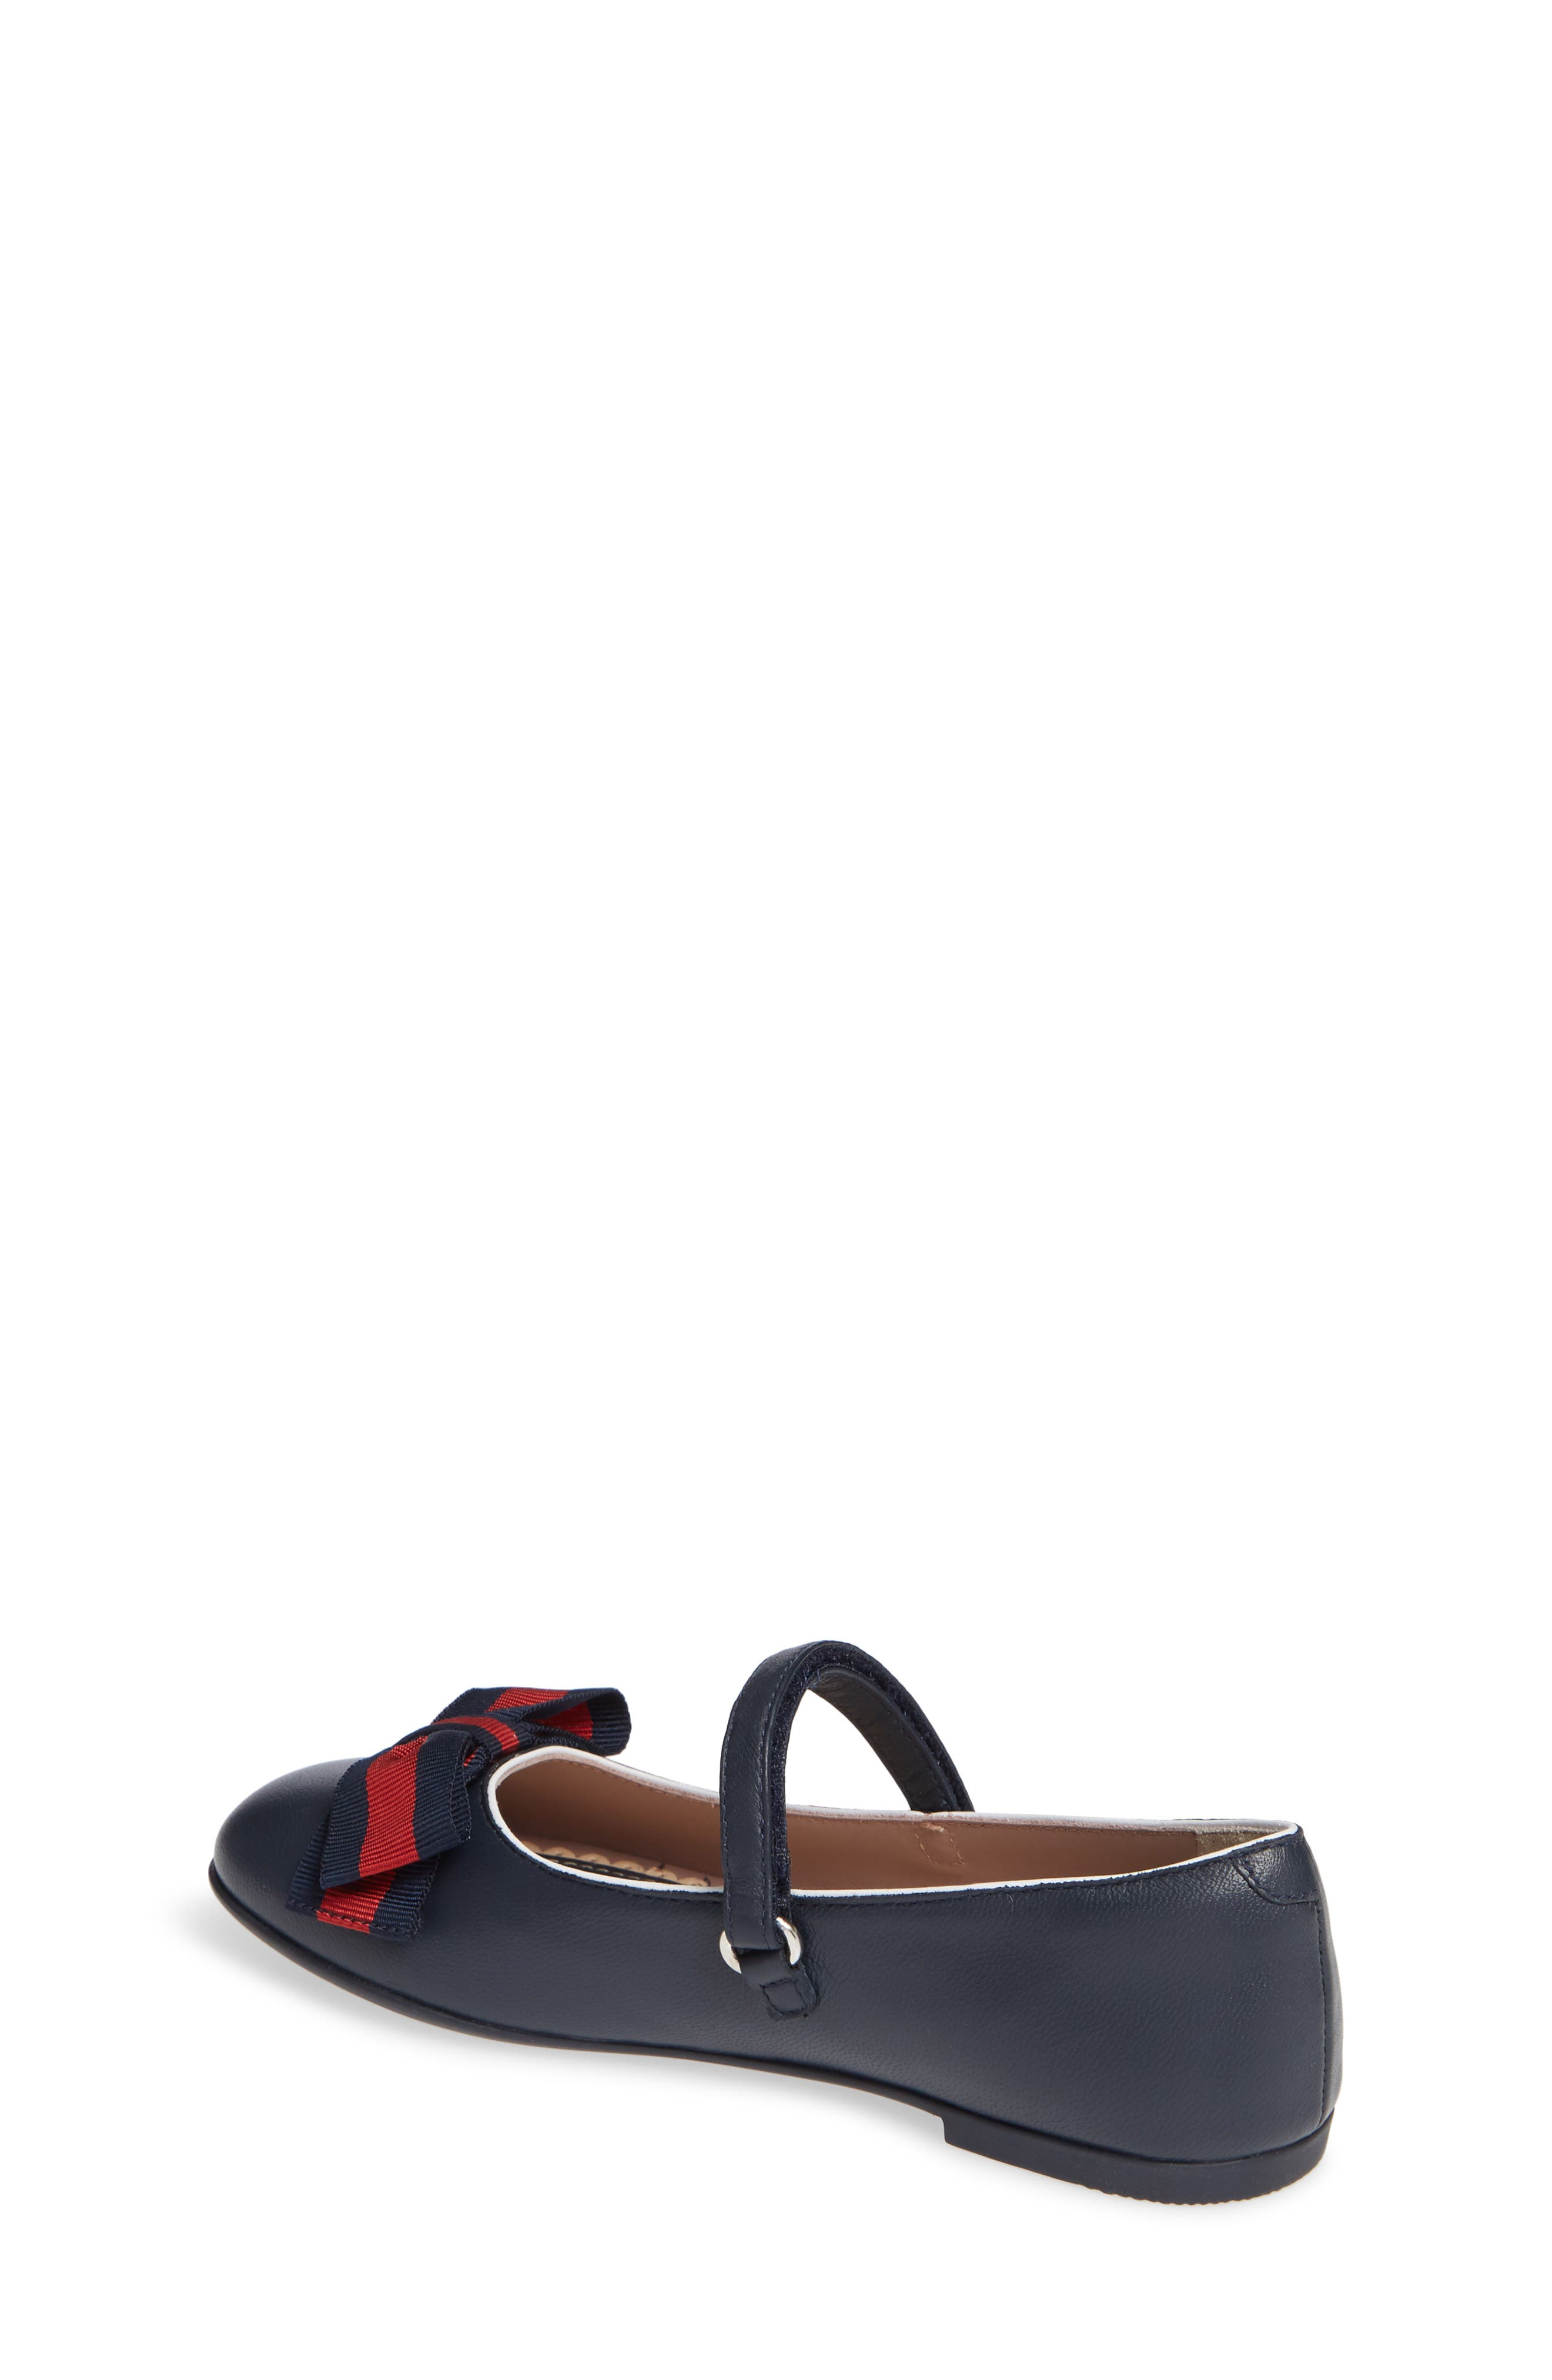 GUCCI, Cindy Mary Jane Flat, Alternate thumbnail 2, color, BLUE/ GREAT WHITE/ RED